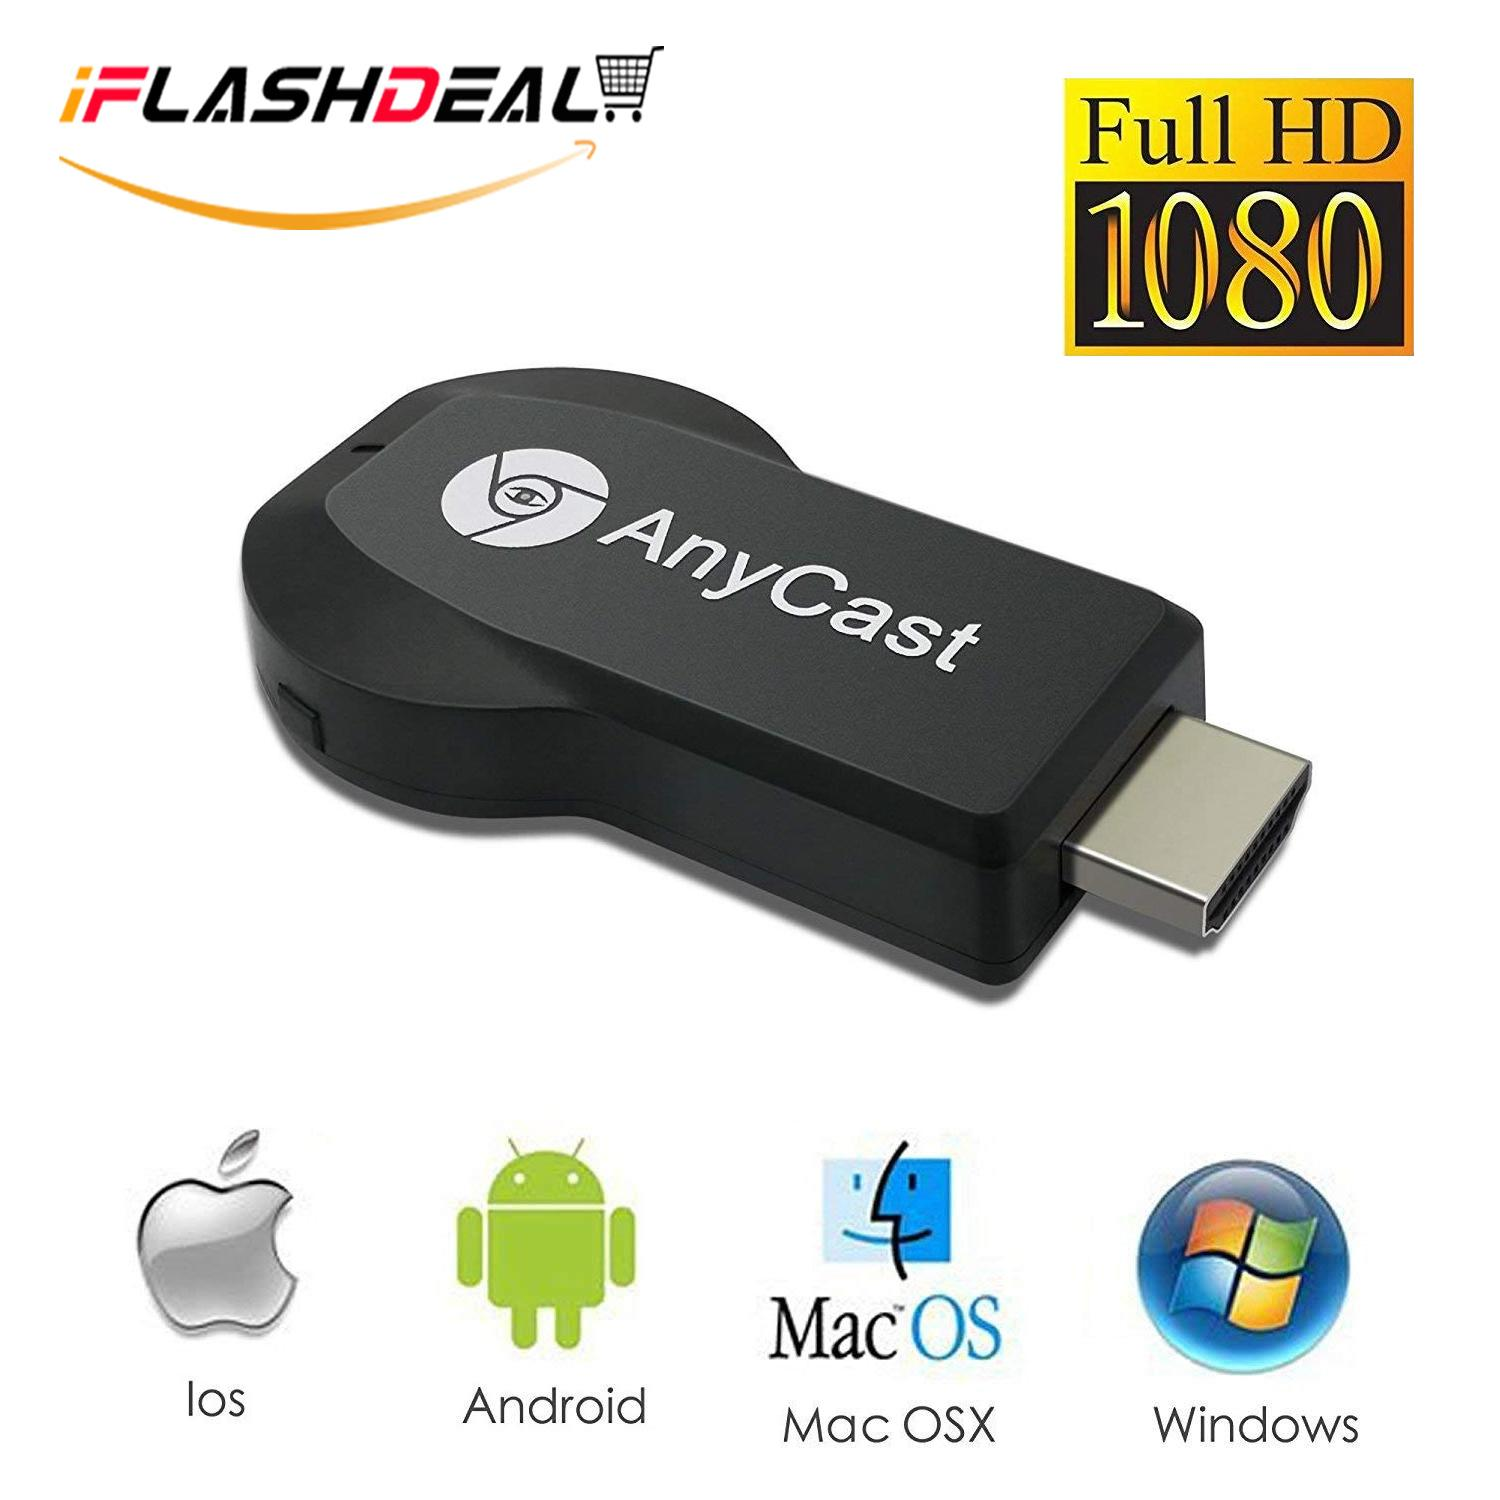 Iflashdeal Display Wifi Nirkabel Adaptor M9 Airplay Wifi Display Dongle Tv Hdmi, Dukungan Online By Iflashdeal.